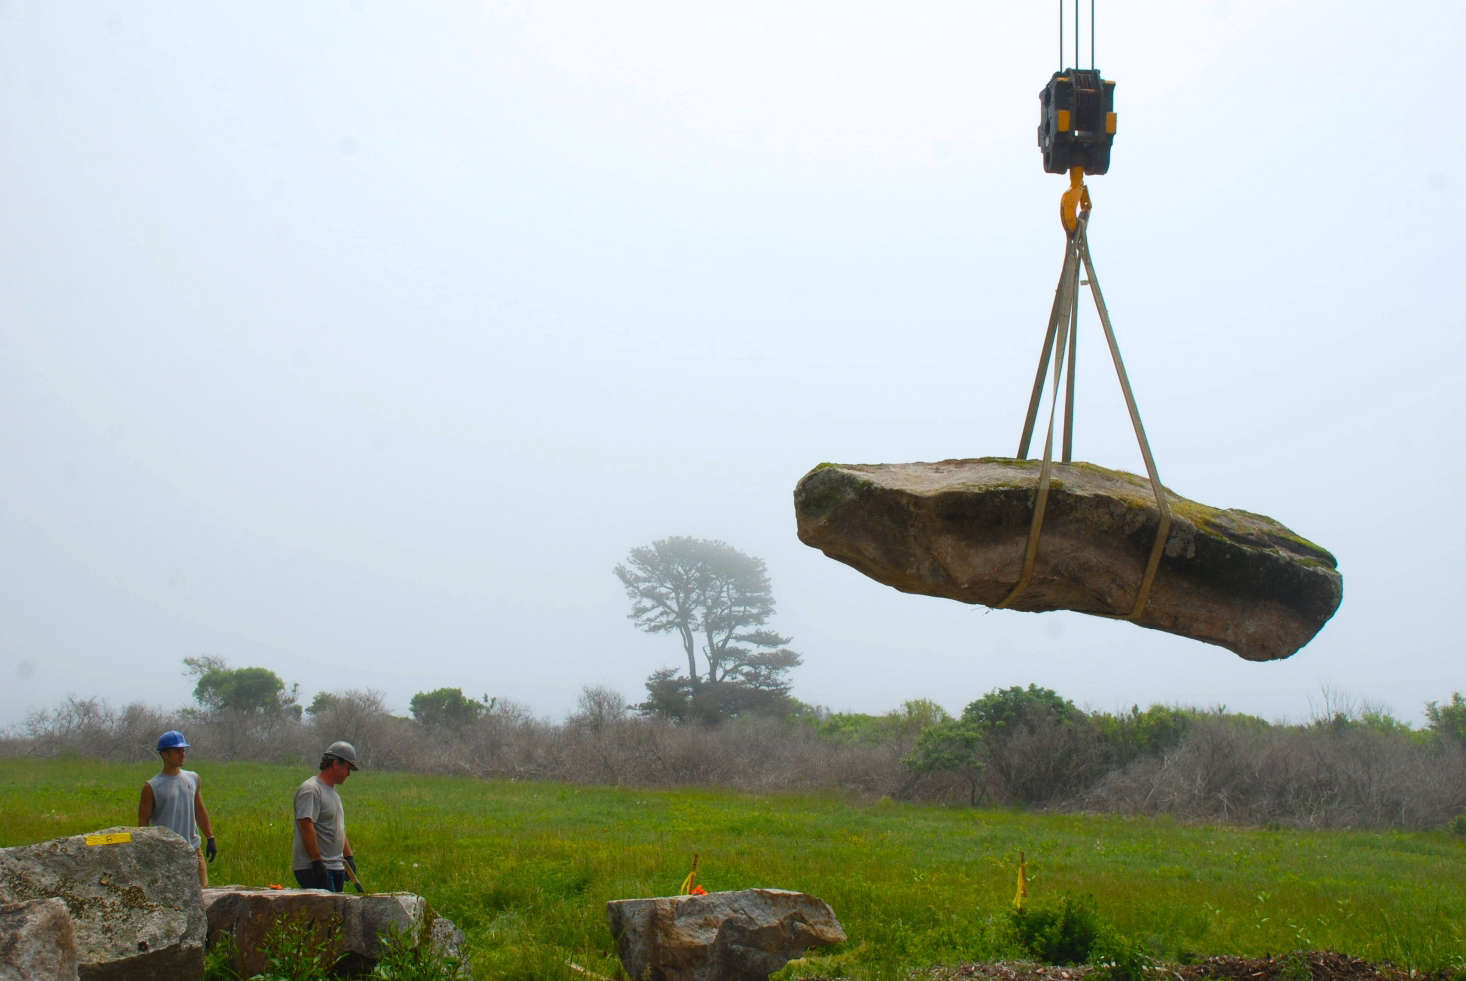 A boulder being laid on the site via crane. Photograph by Todd Richardson.